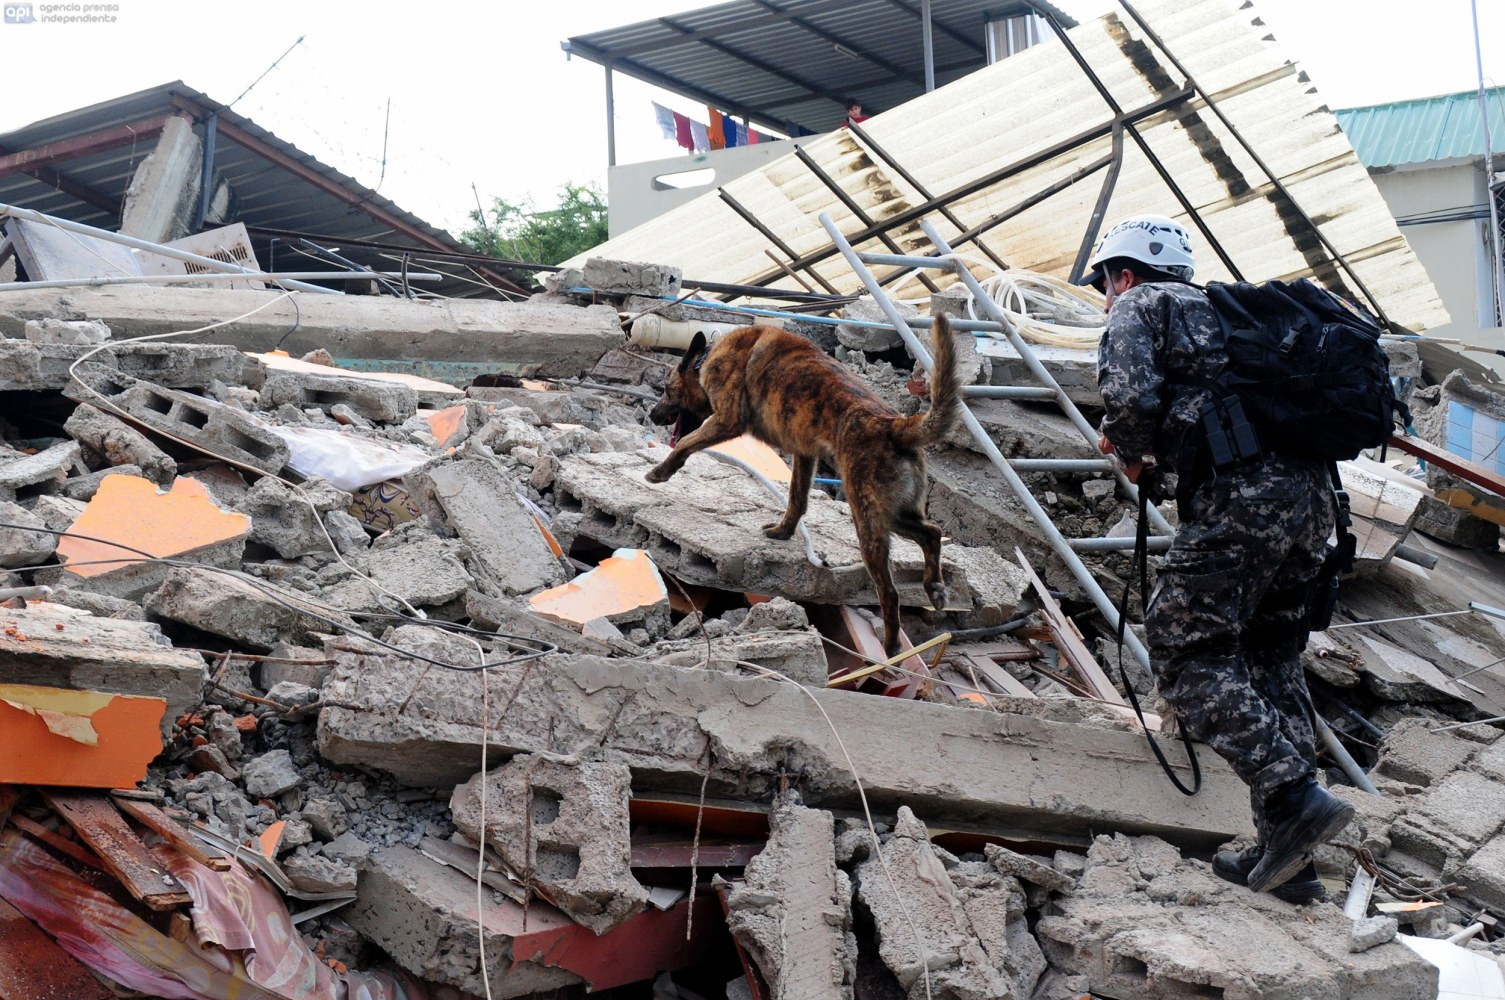 Ecuador Earthquake Death Toll Rises to 413, One American Dead - NBC ...